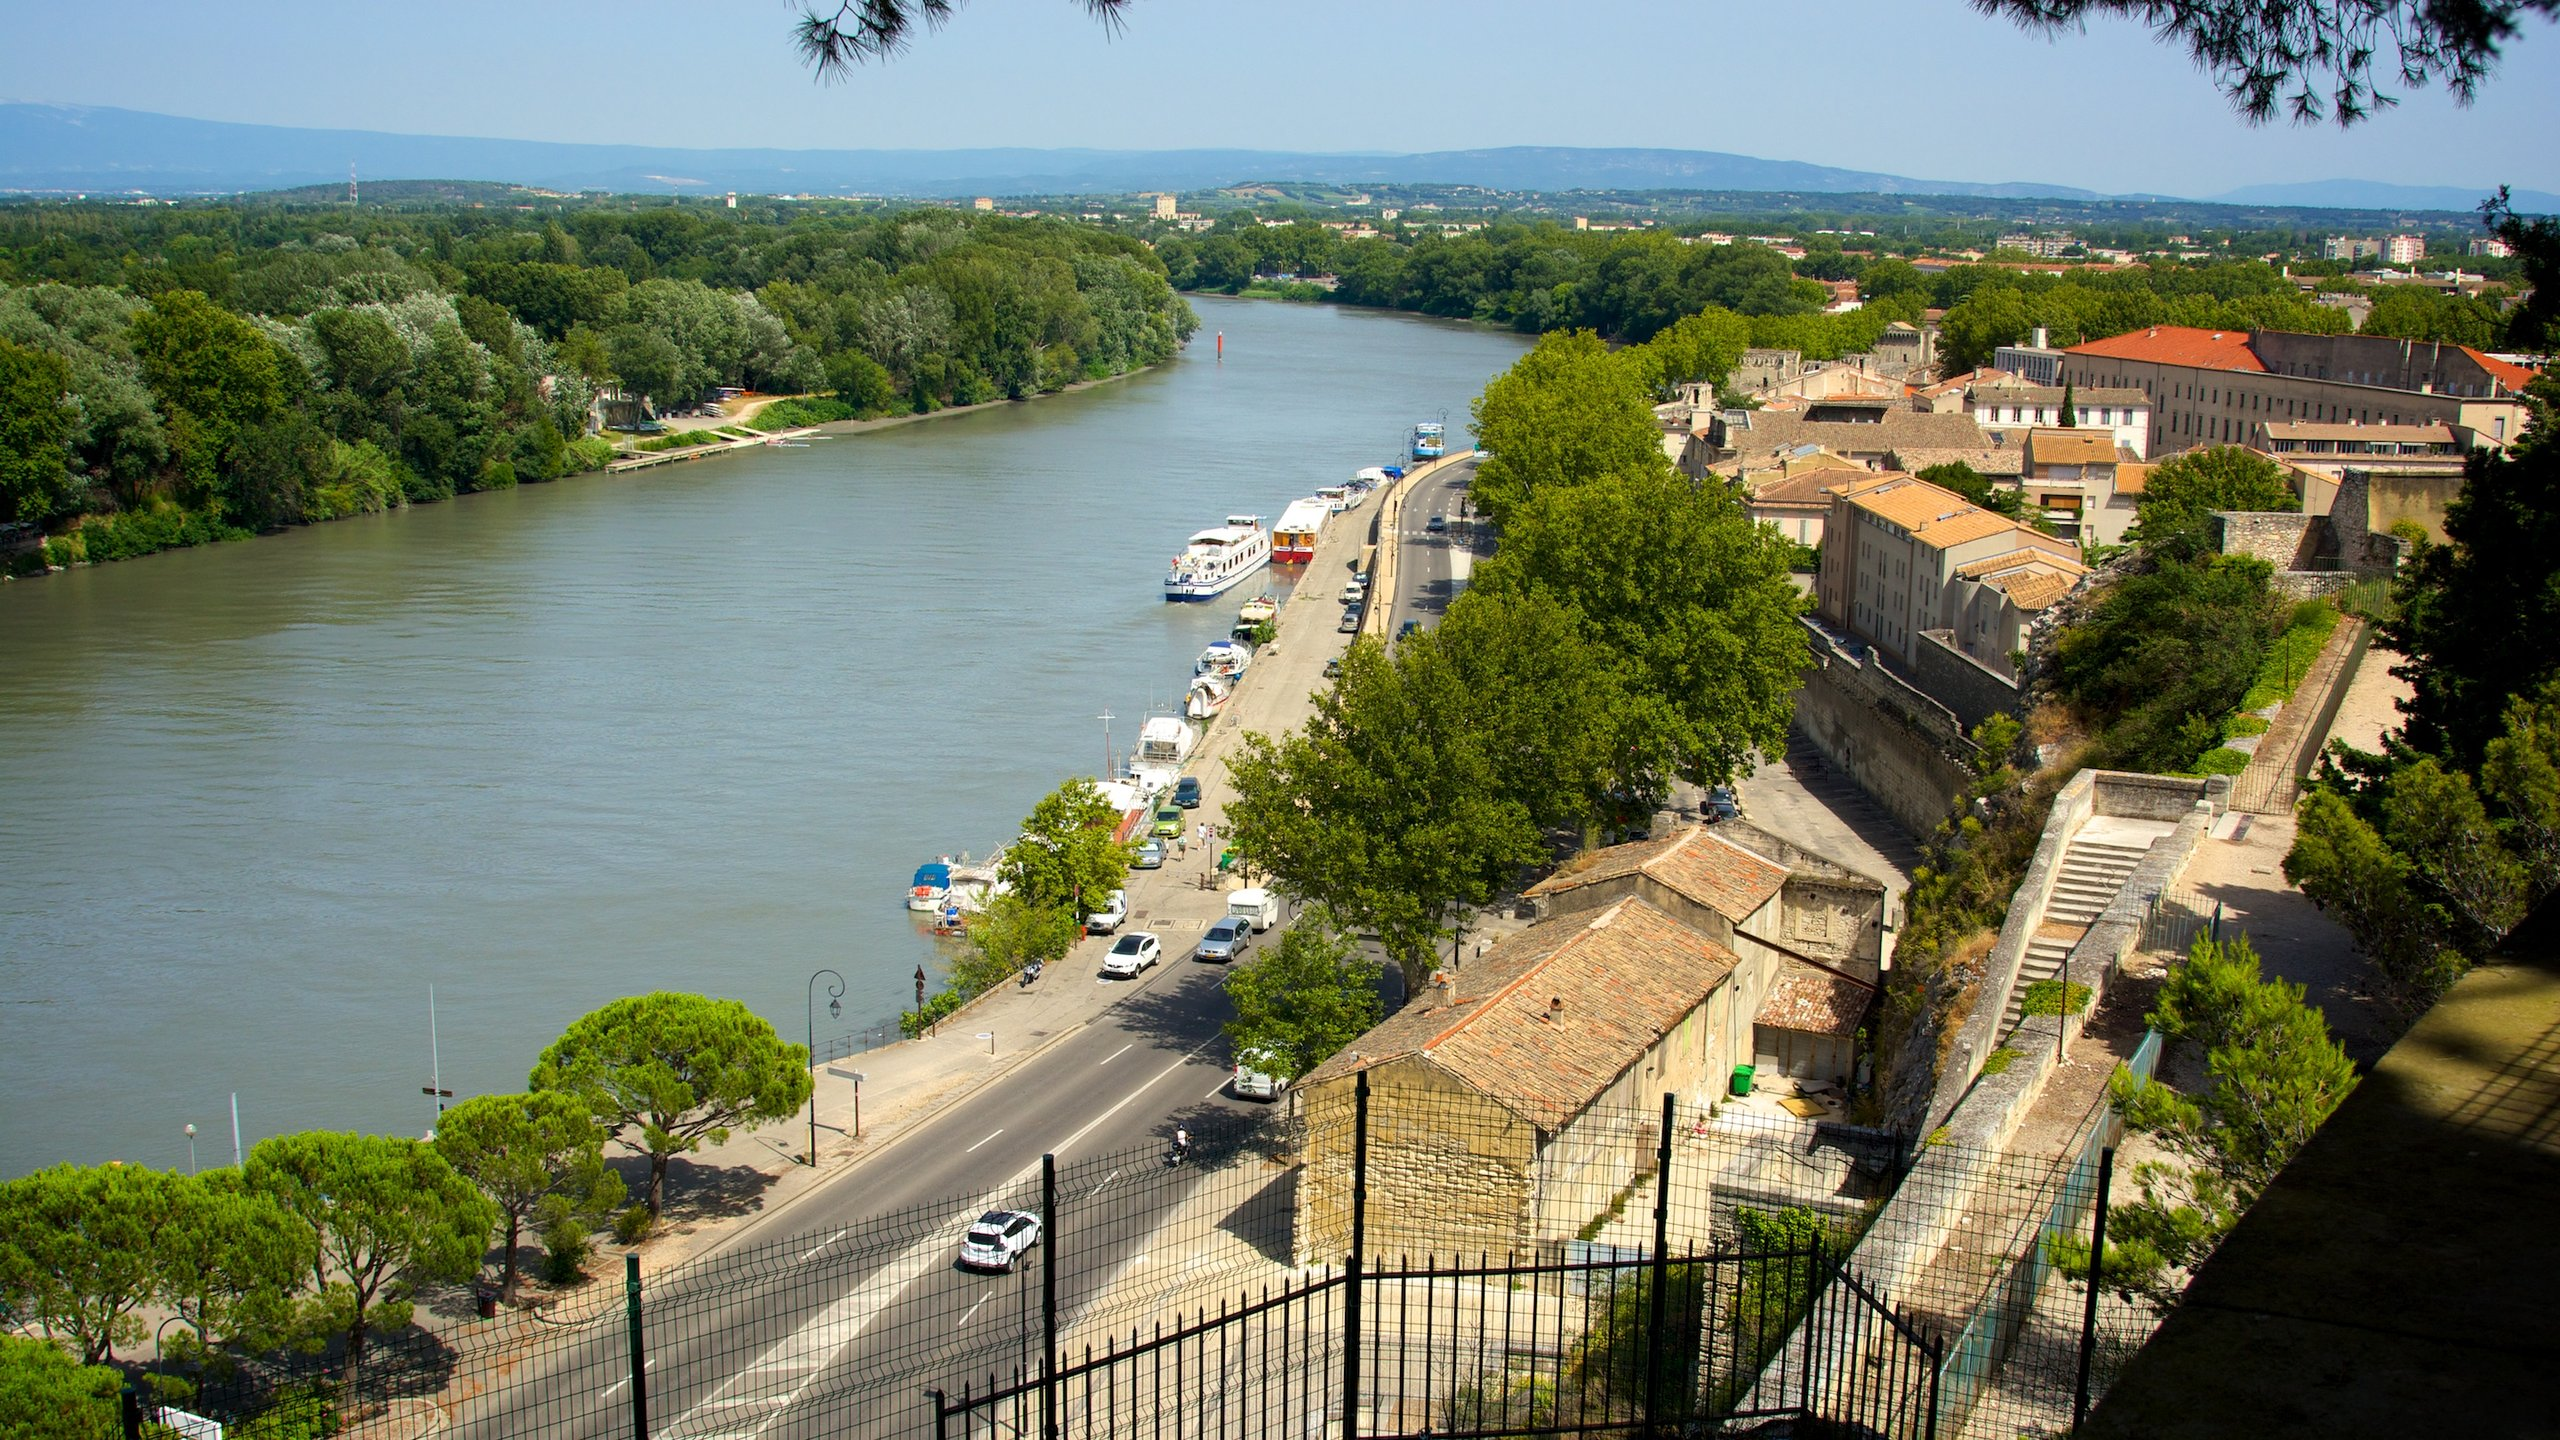 Attend a concert, sporting event, art exhibition or even a circis at this stunning center just outside Avignon.